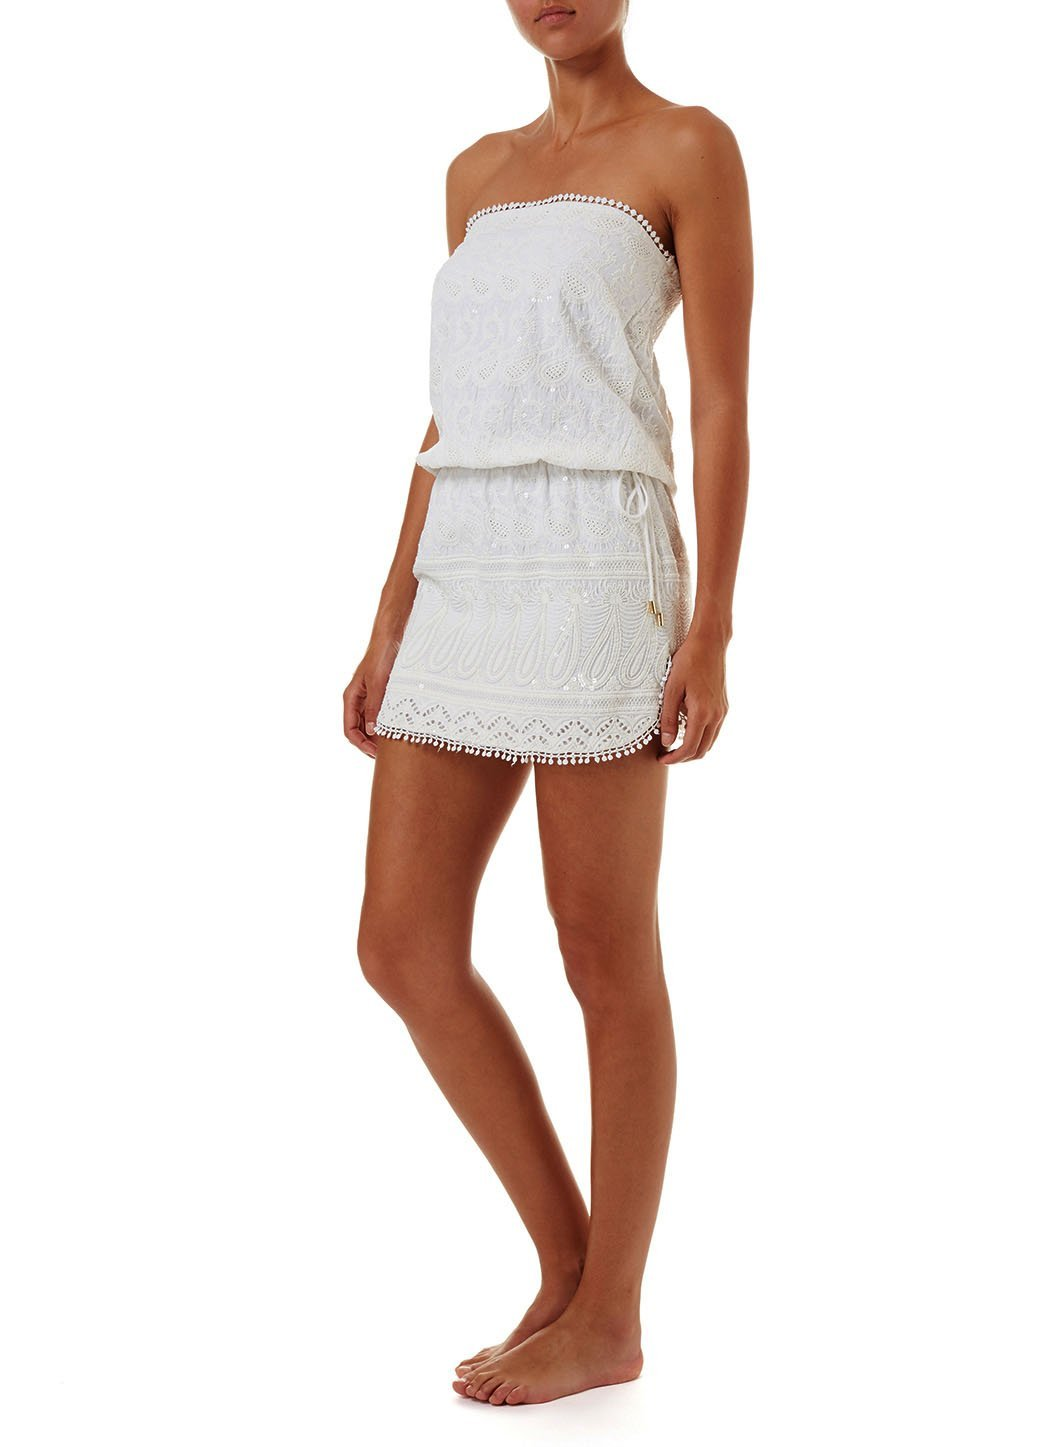 tia white textured short bandeau dress 2019 F